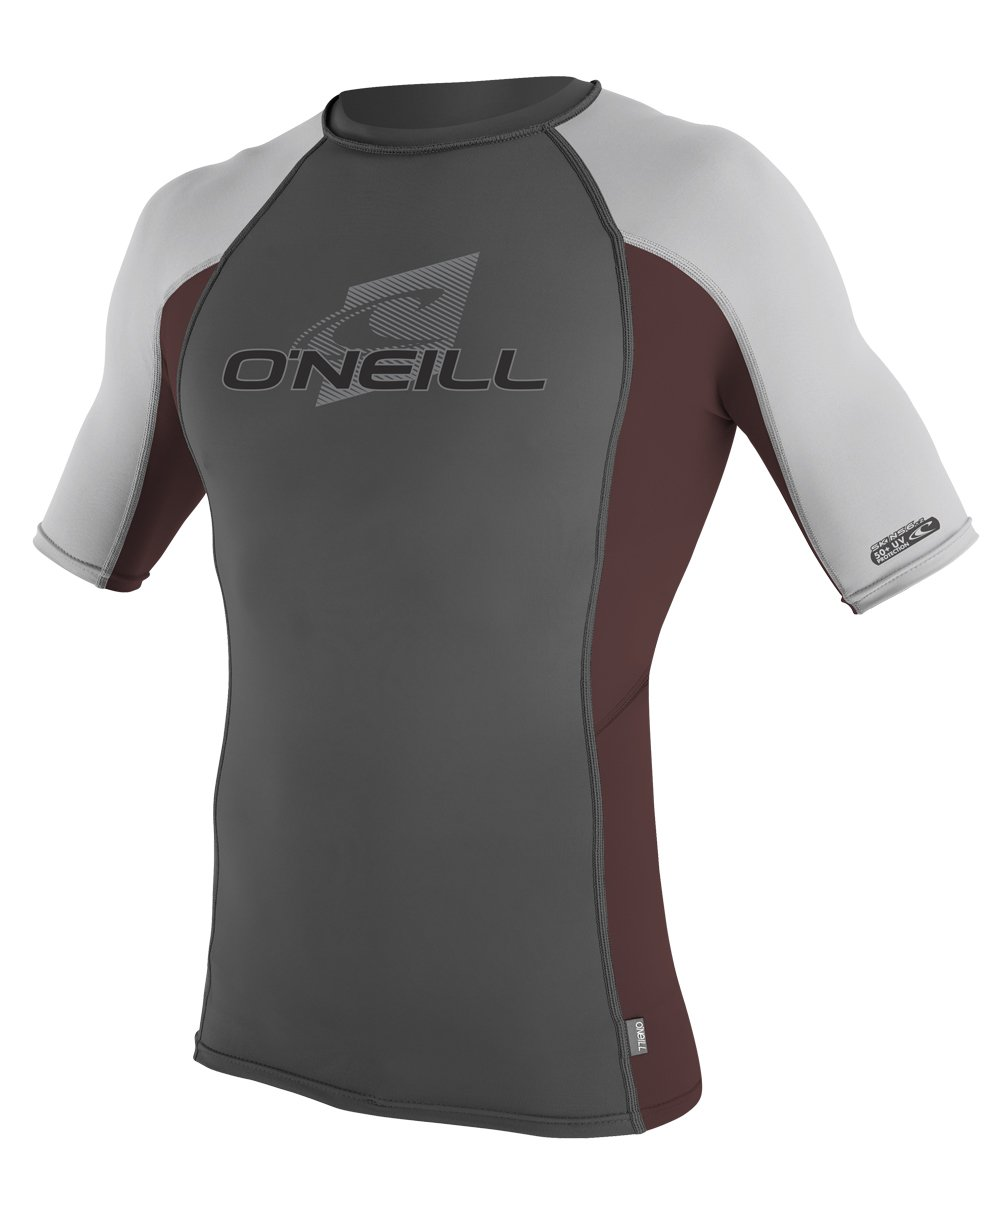 O'Neill Wetsuits O'Neill Men's Premium Skins UPF 50+ Short Sleeve Rash Guard, Graphite/Myers/Lunar, Small by O'Neill Wetsuits